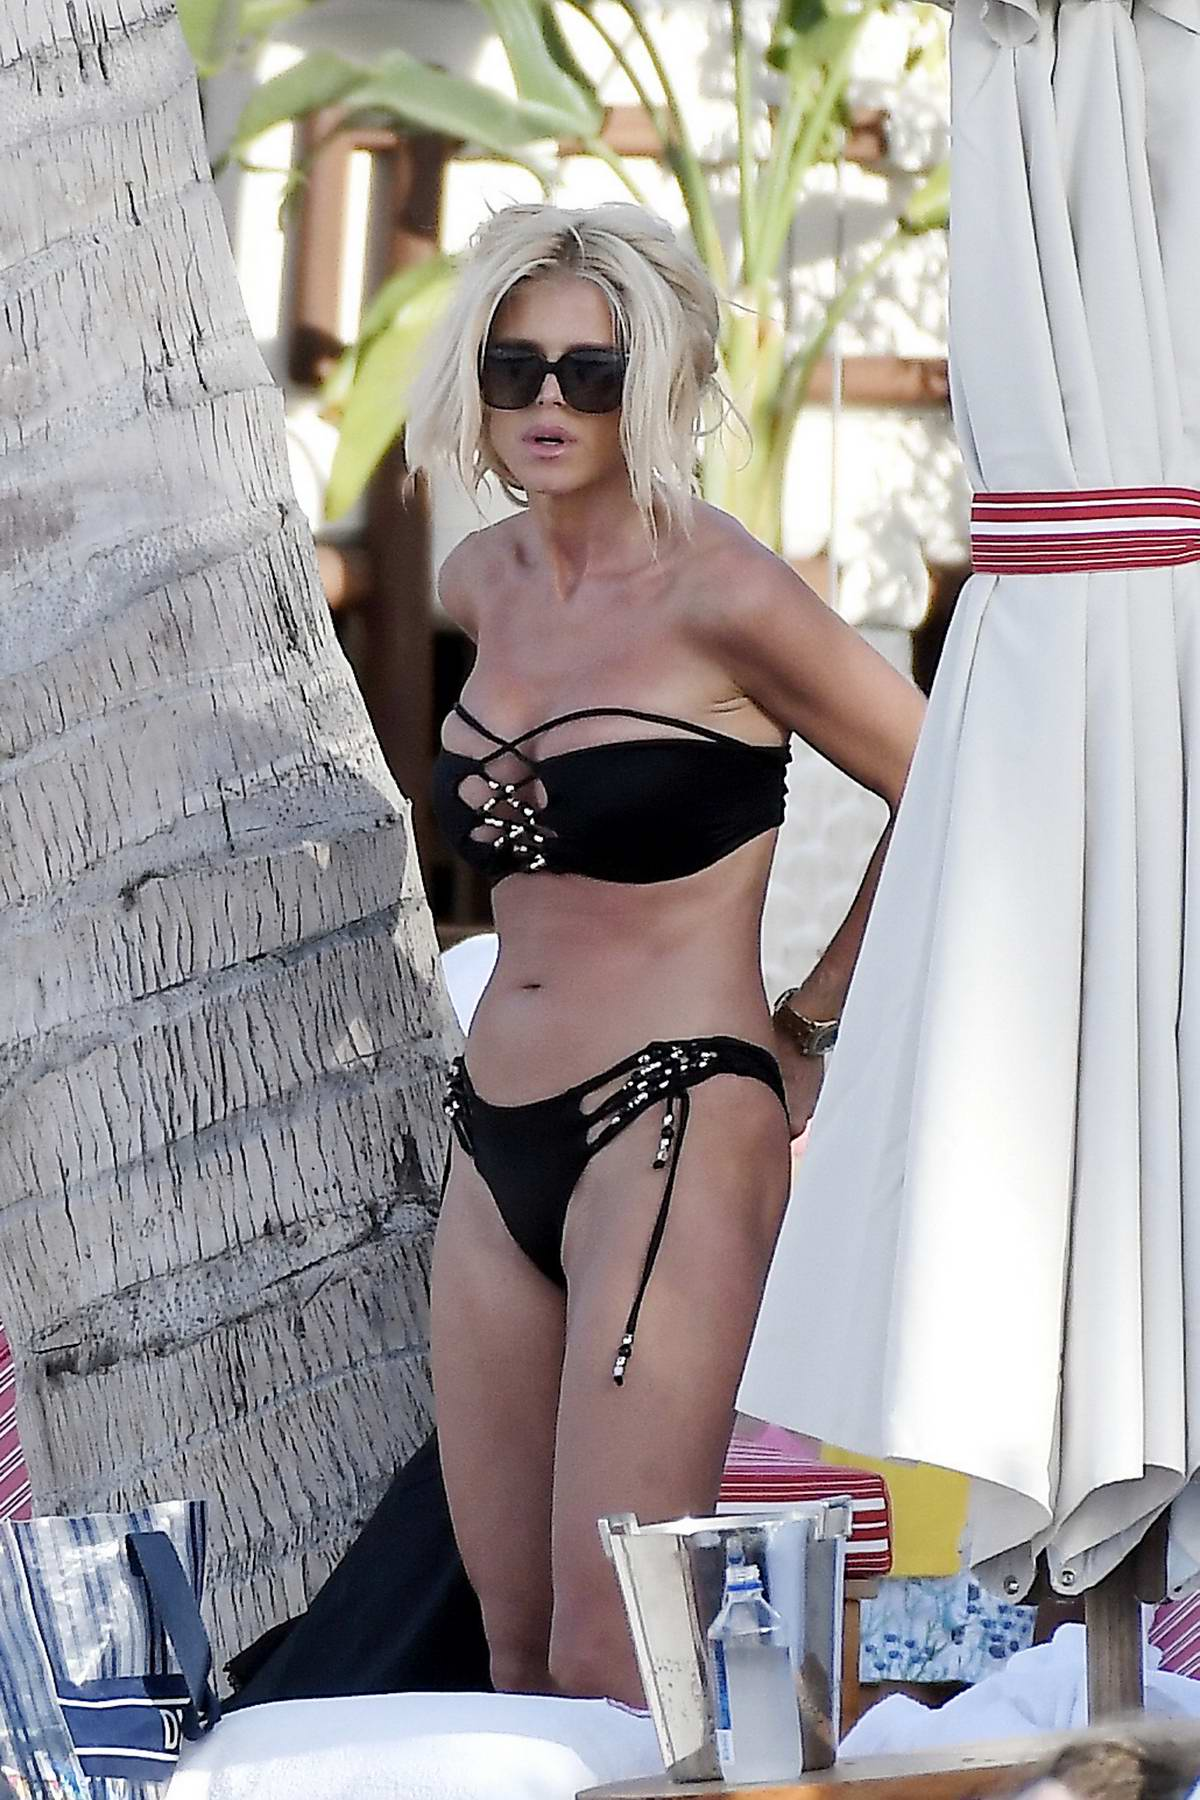 Victoria Silvstedt seen wearing a black bikini as she enjoys a beach day in St Barts, France